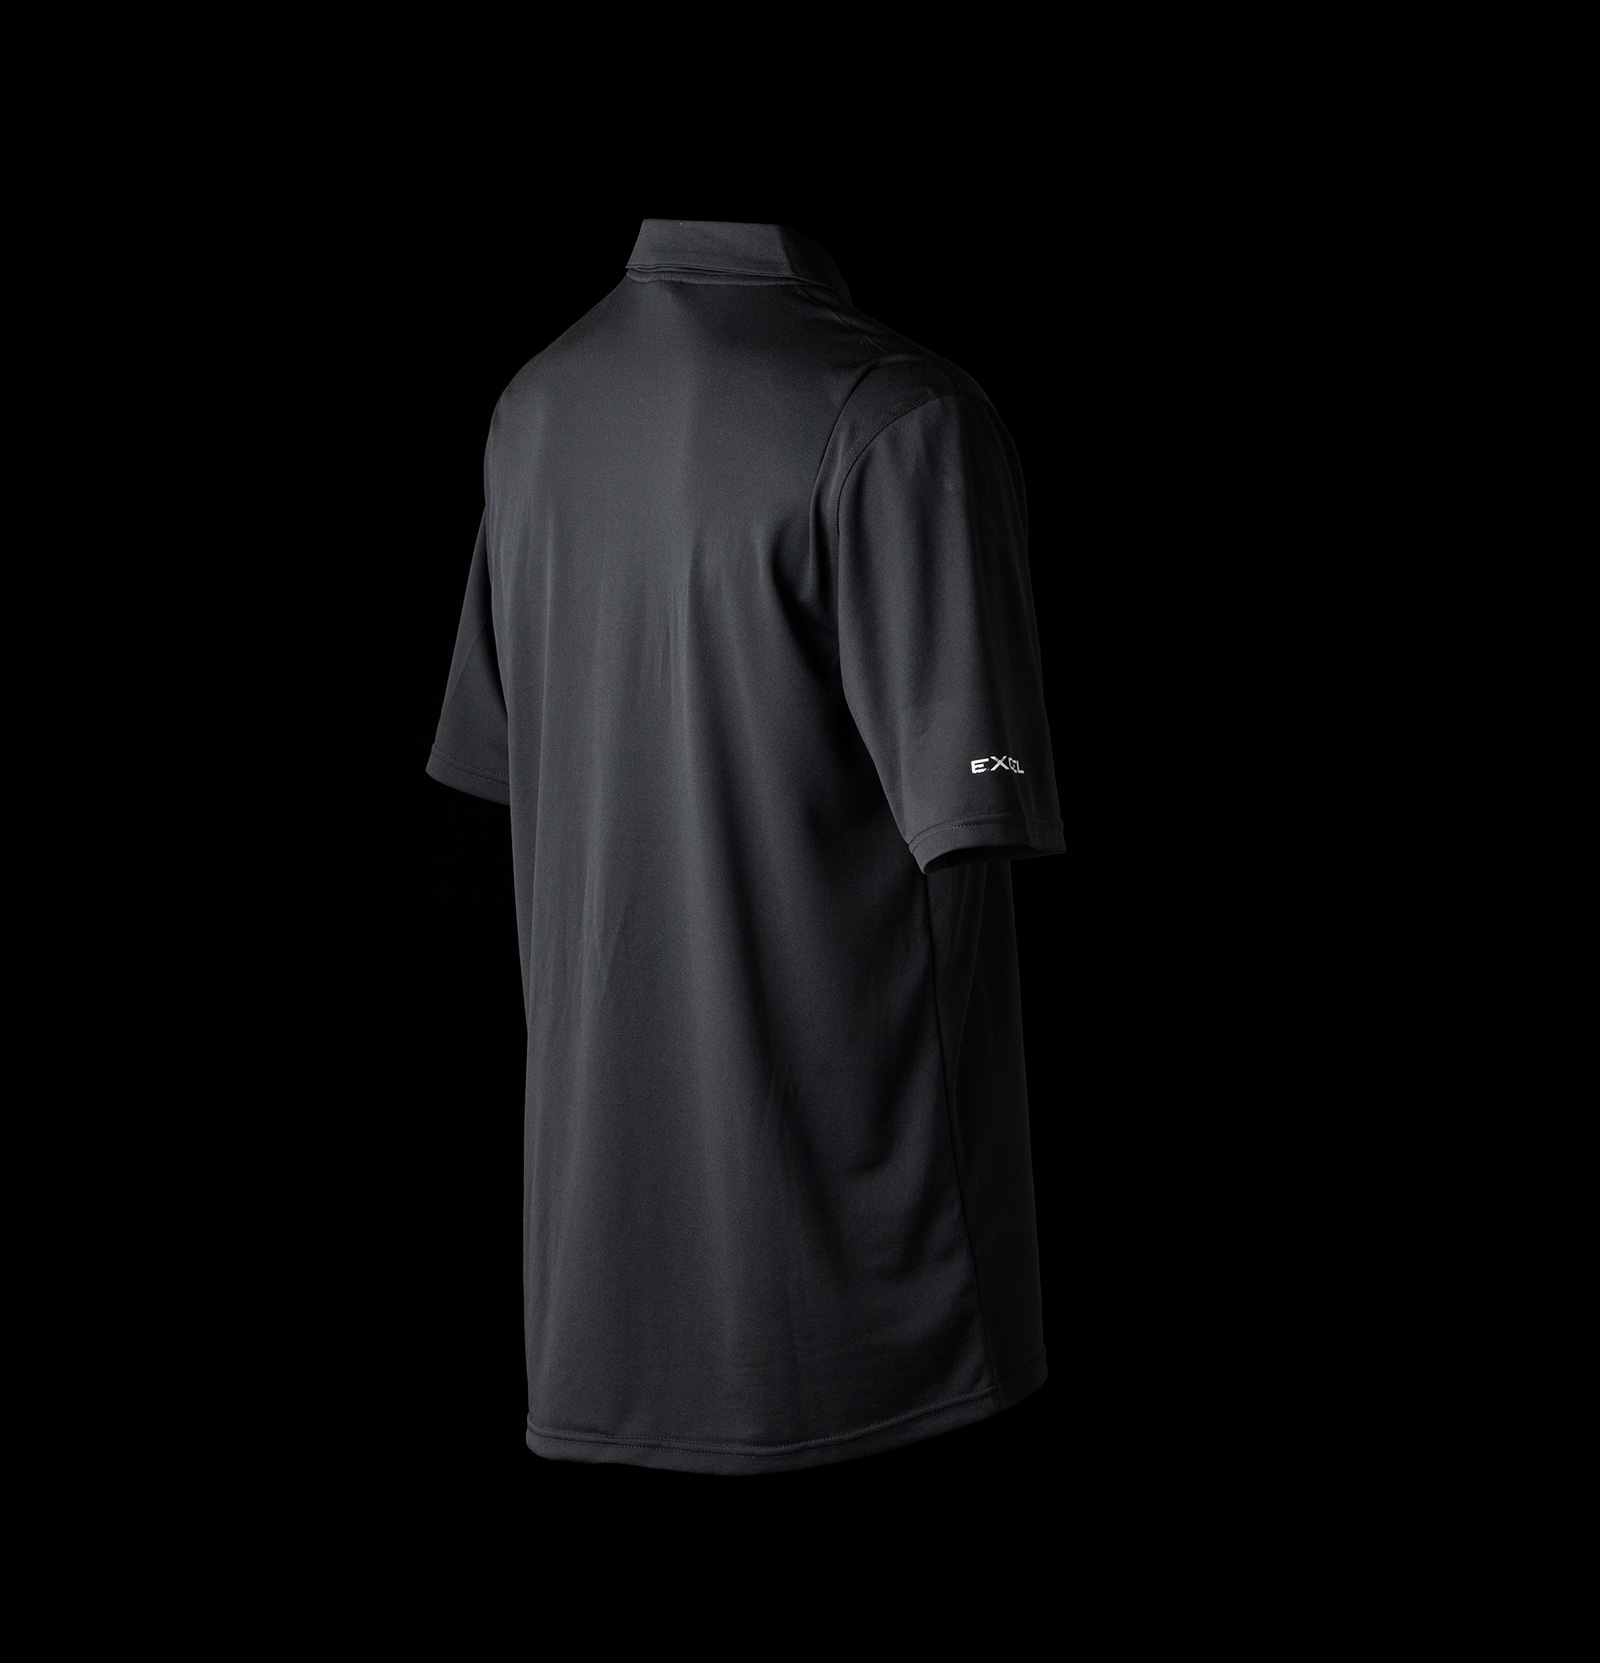 Excel-Polo-Shirt-Promo-48